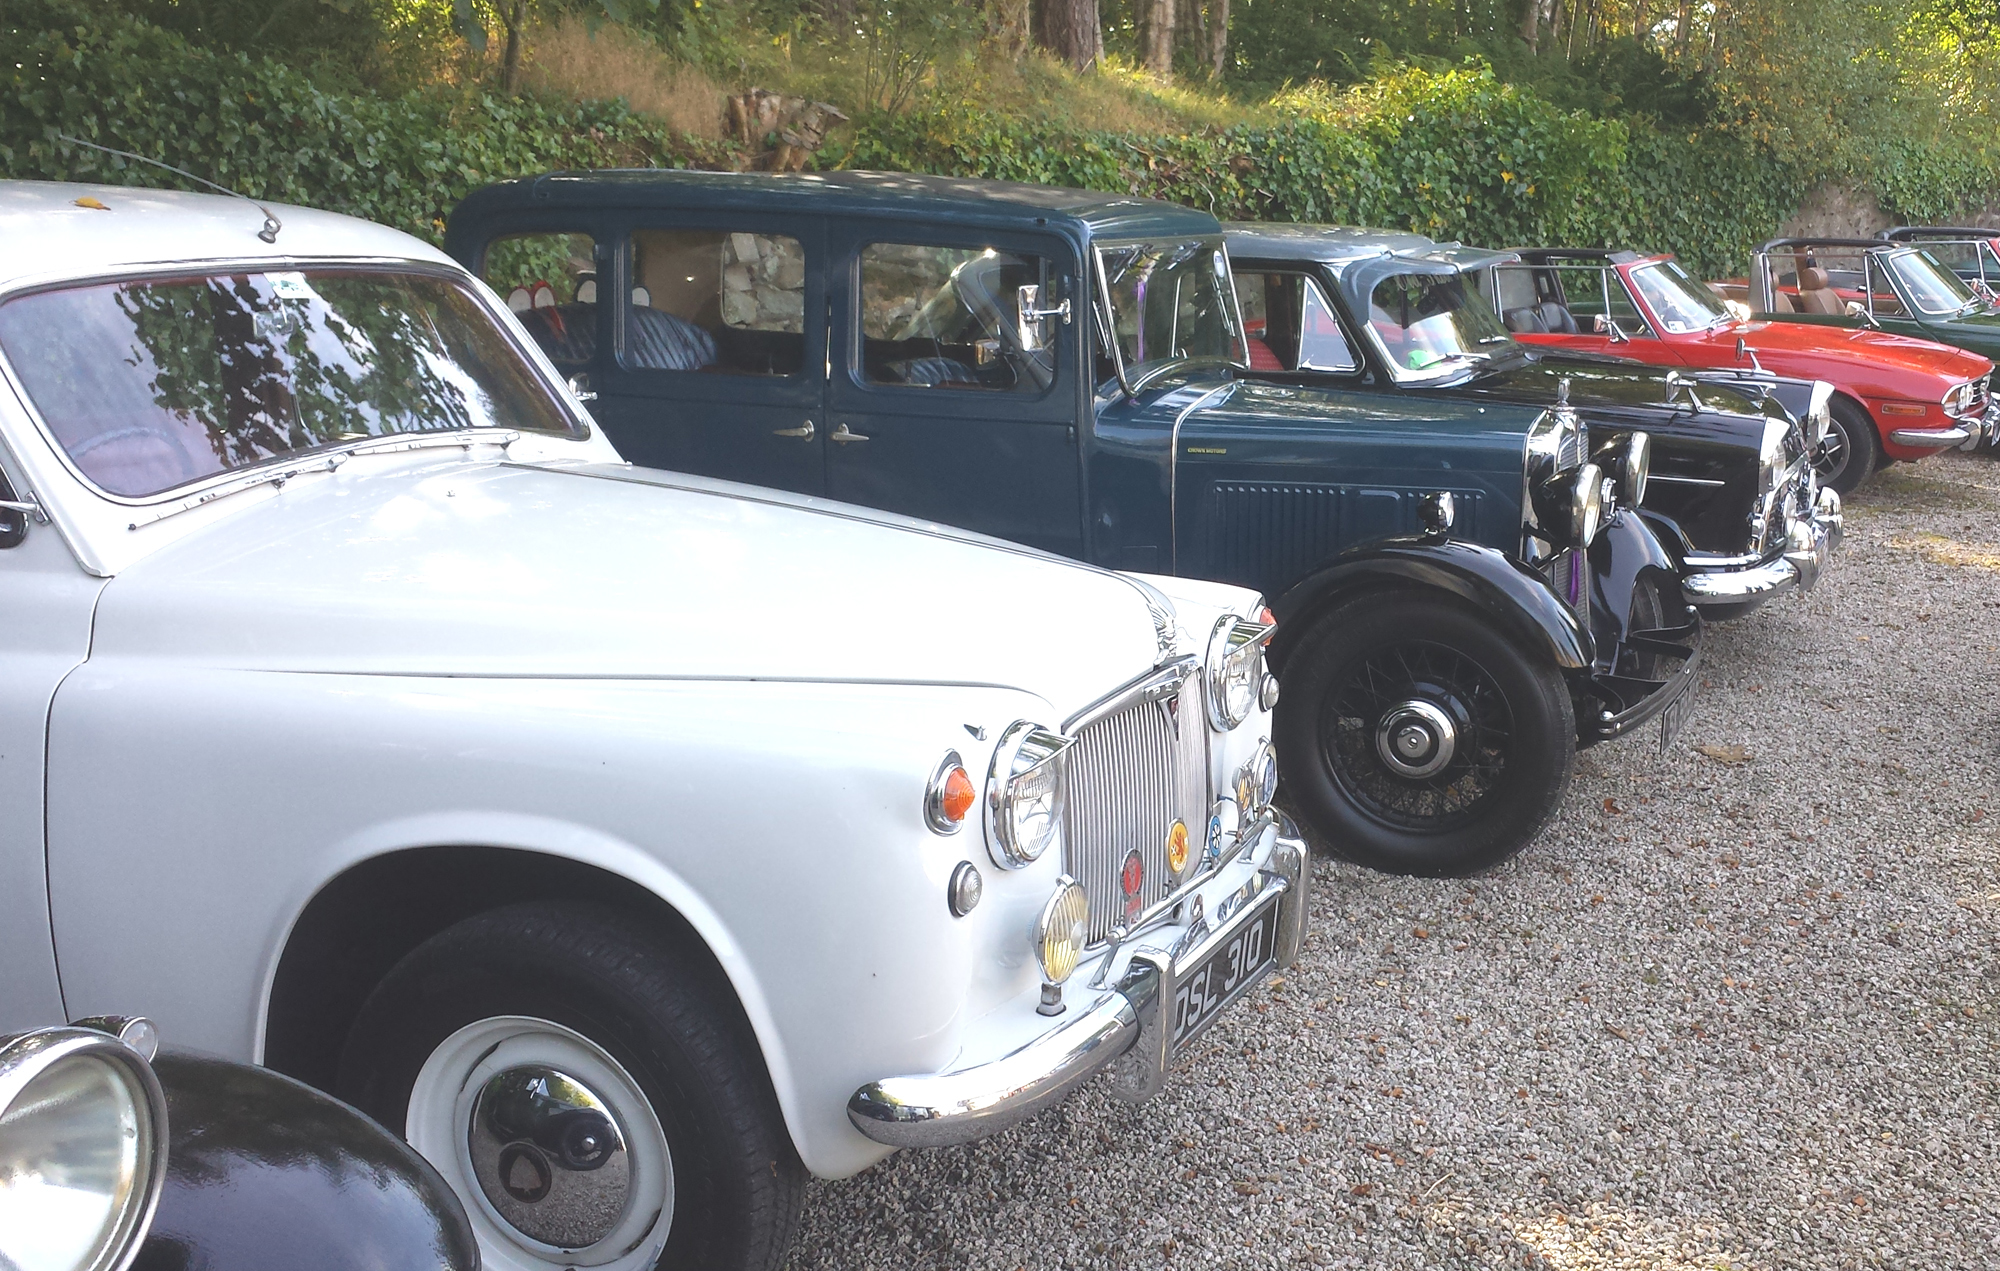 Vintage cars will be on display at Aden Country Park.